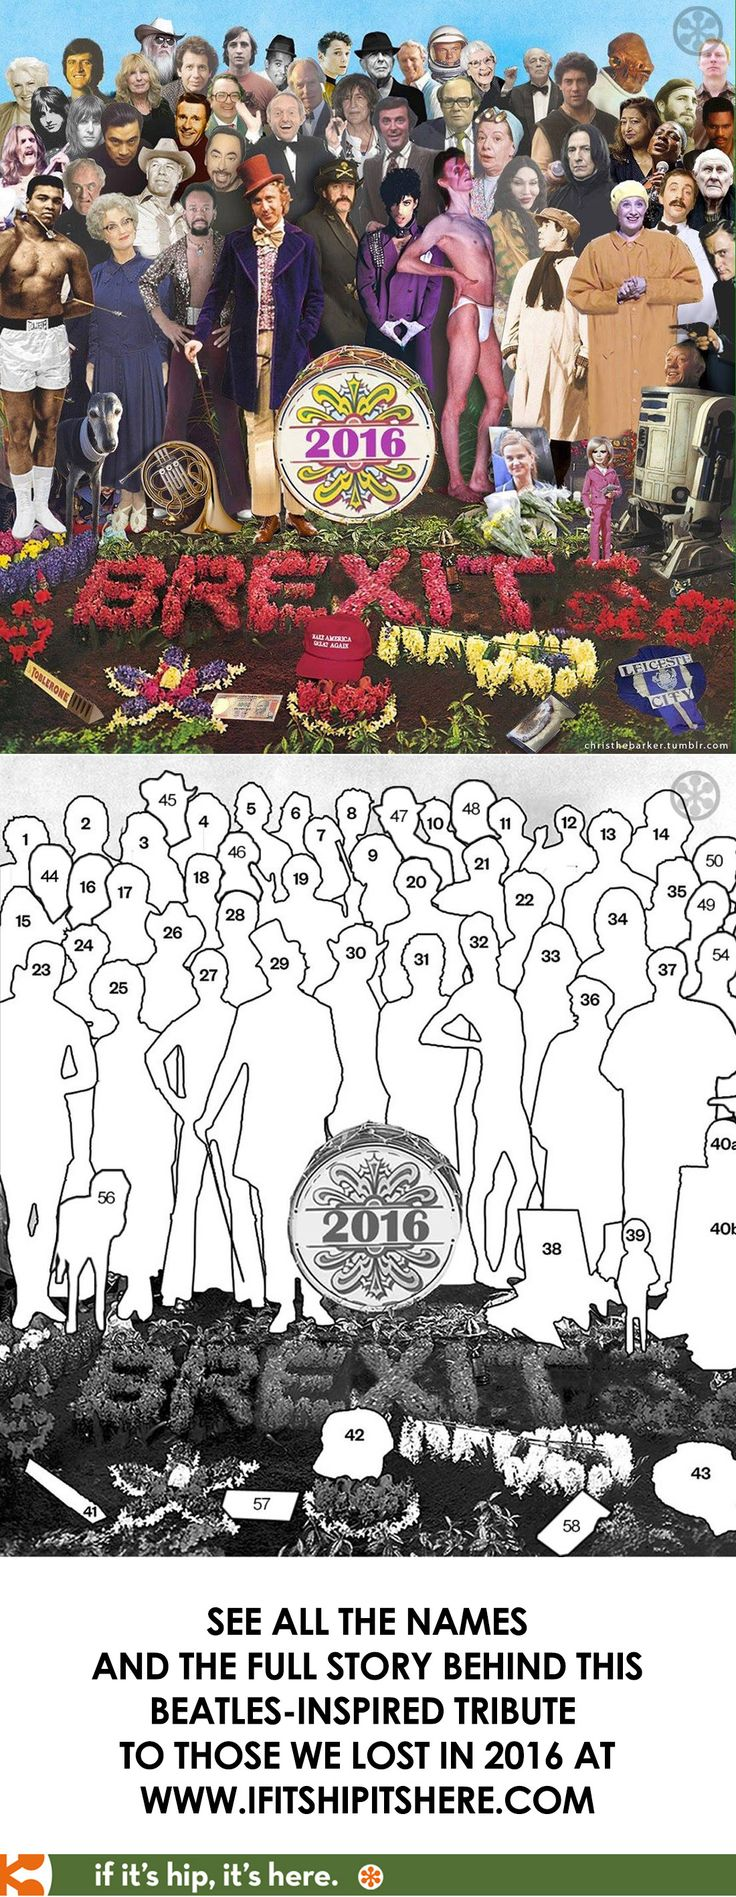 Check out this interesting Beatles-inspired Sgt Pepper's album cover recreation as a tribute to who and what we lost in 2016 at http://www.ifitshipitshere.com/sgt-pepper-album-cover-tribute-2016/